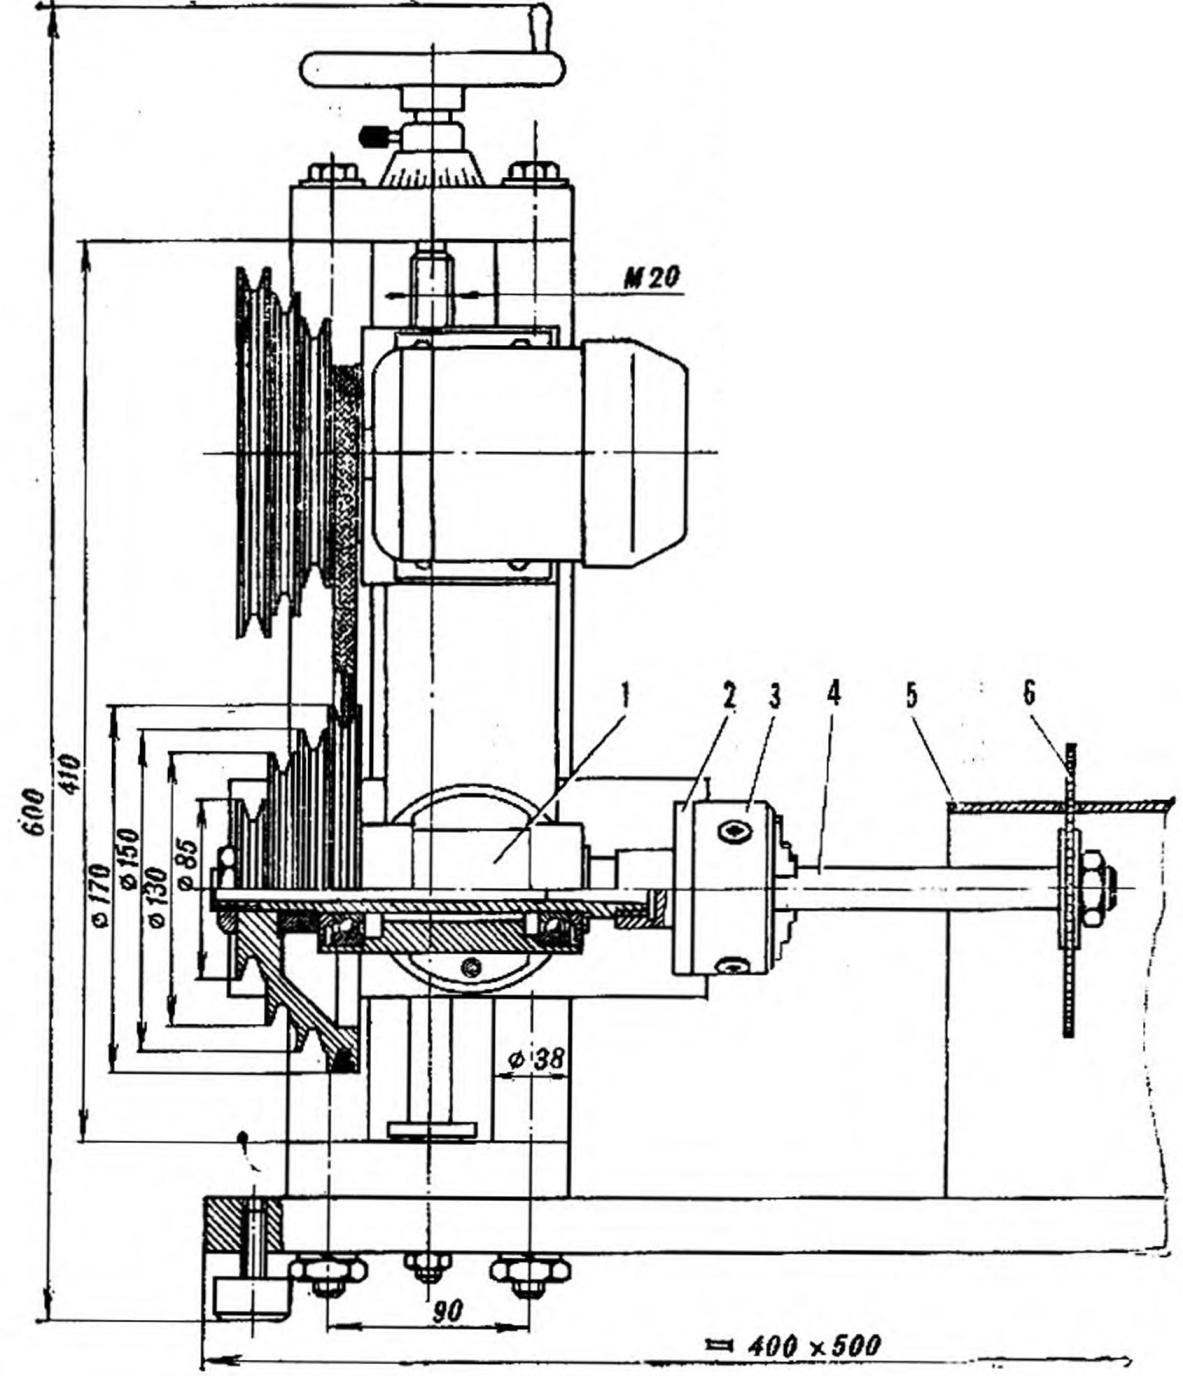 Fig. 1. The machine in horizontal version